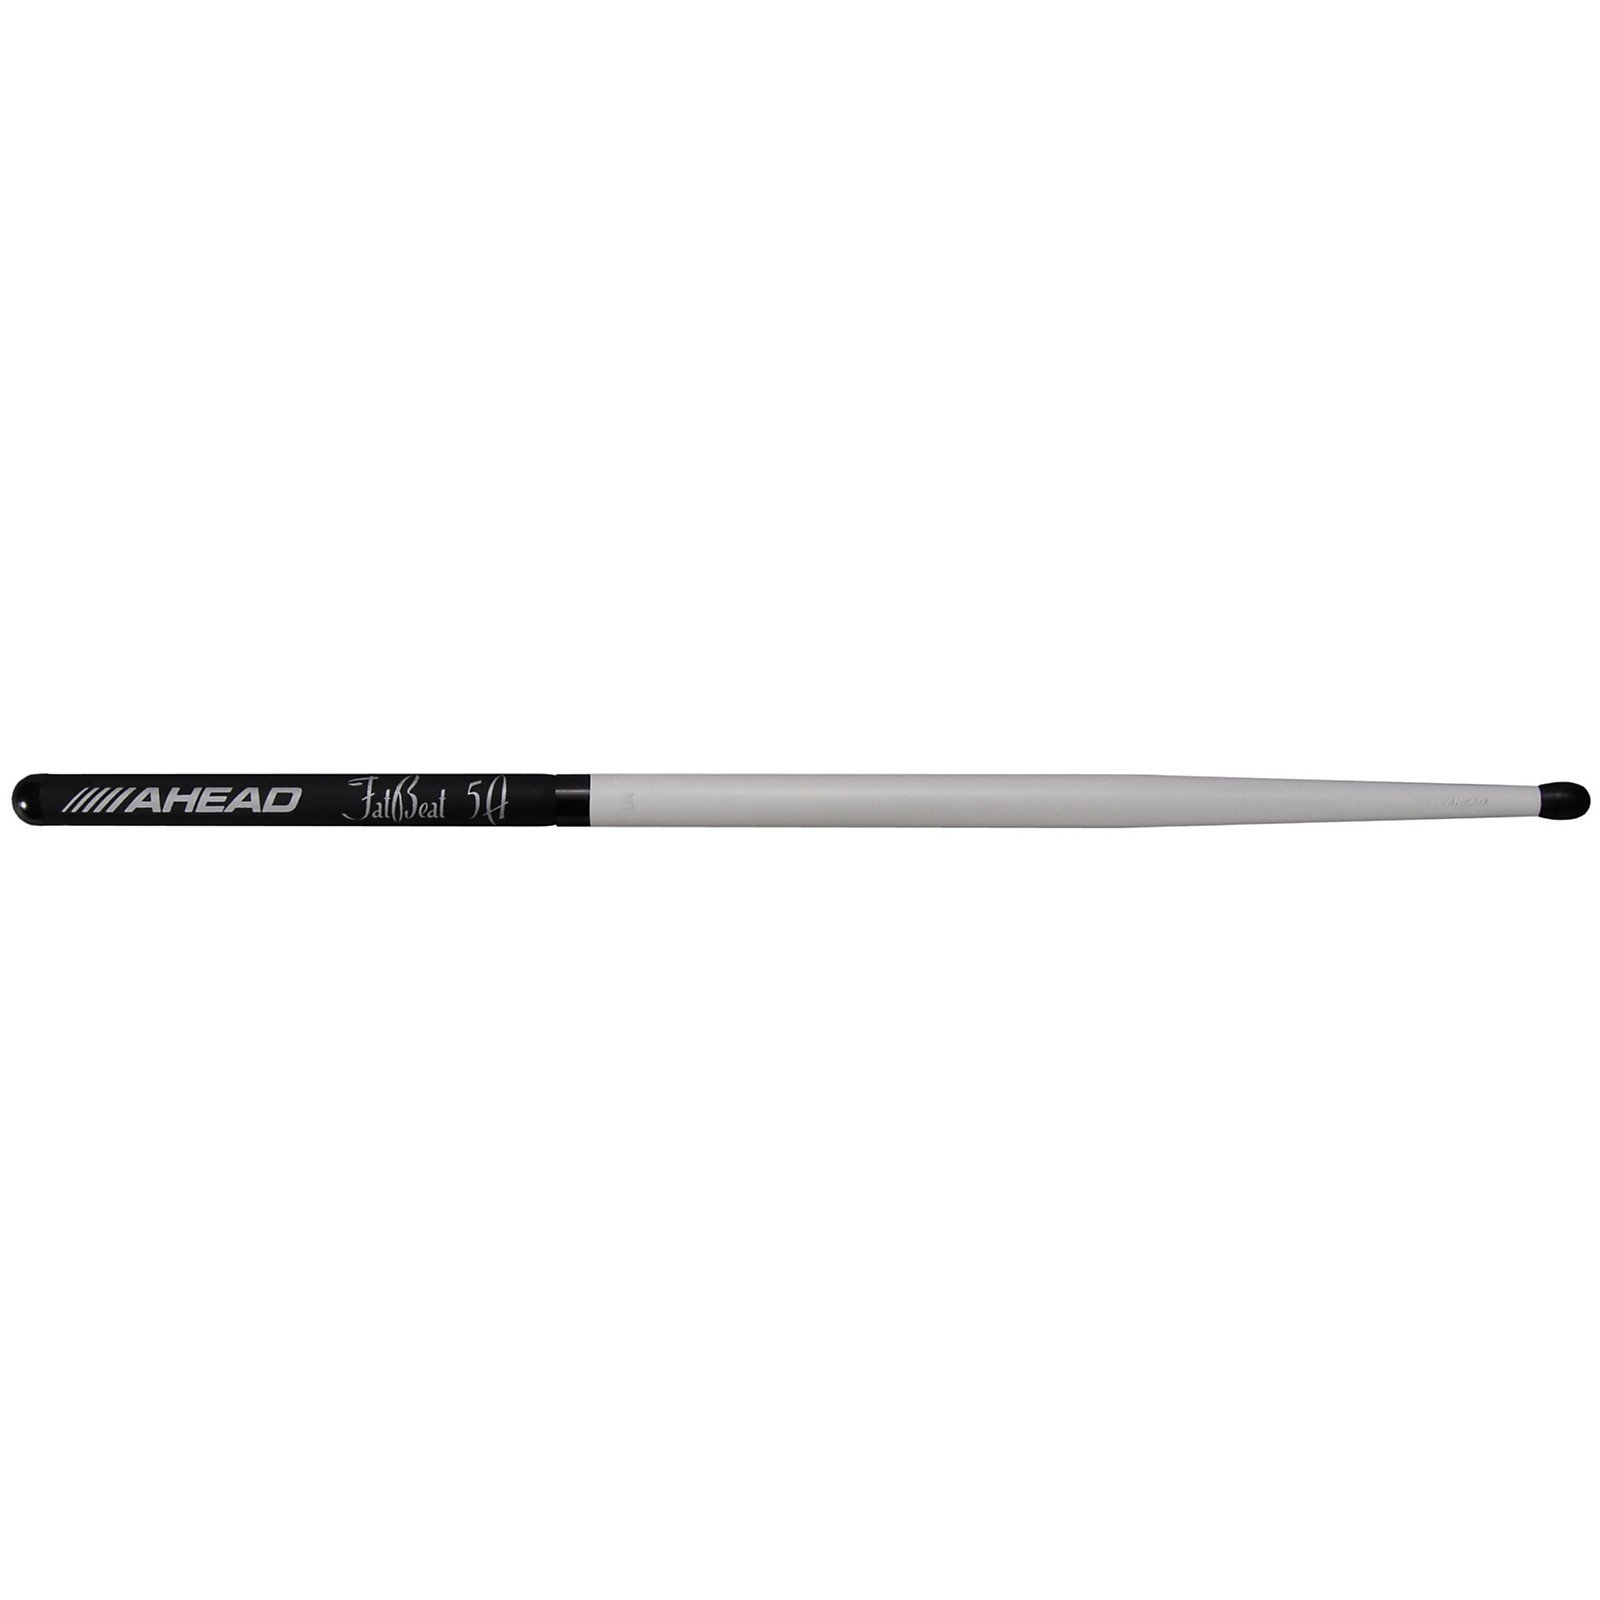 Ahead FatBeat Medium Taper Sticks (Pair)